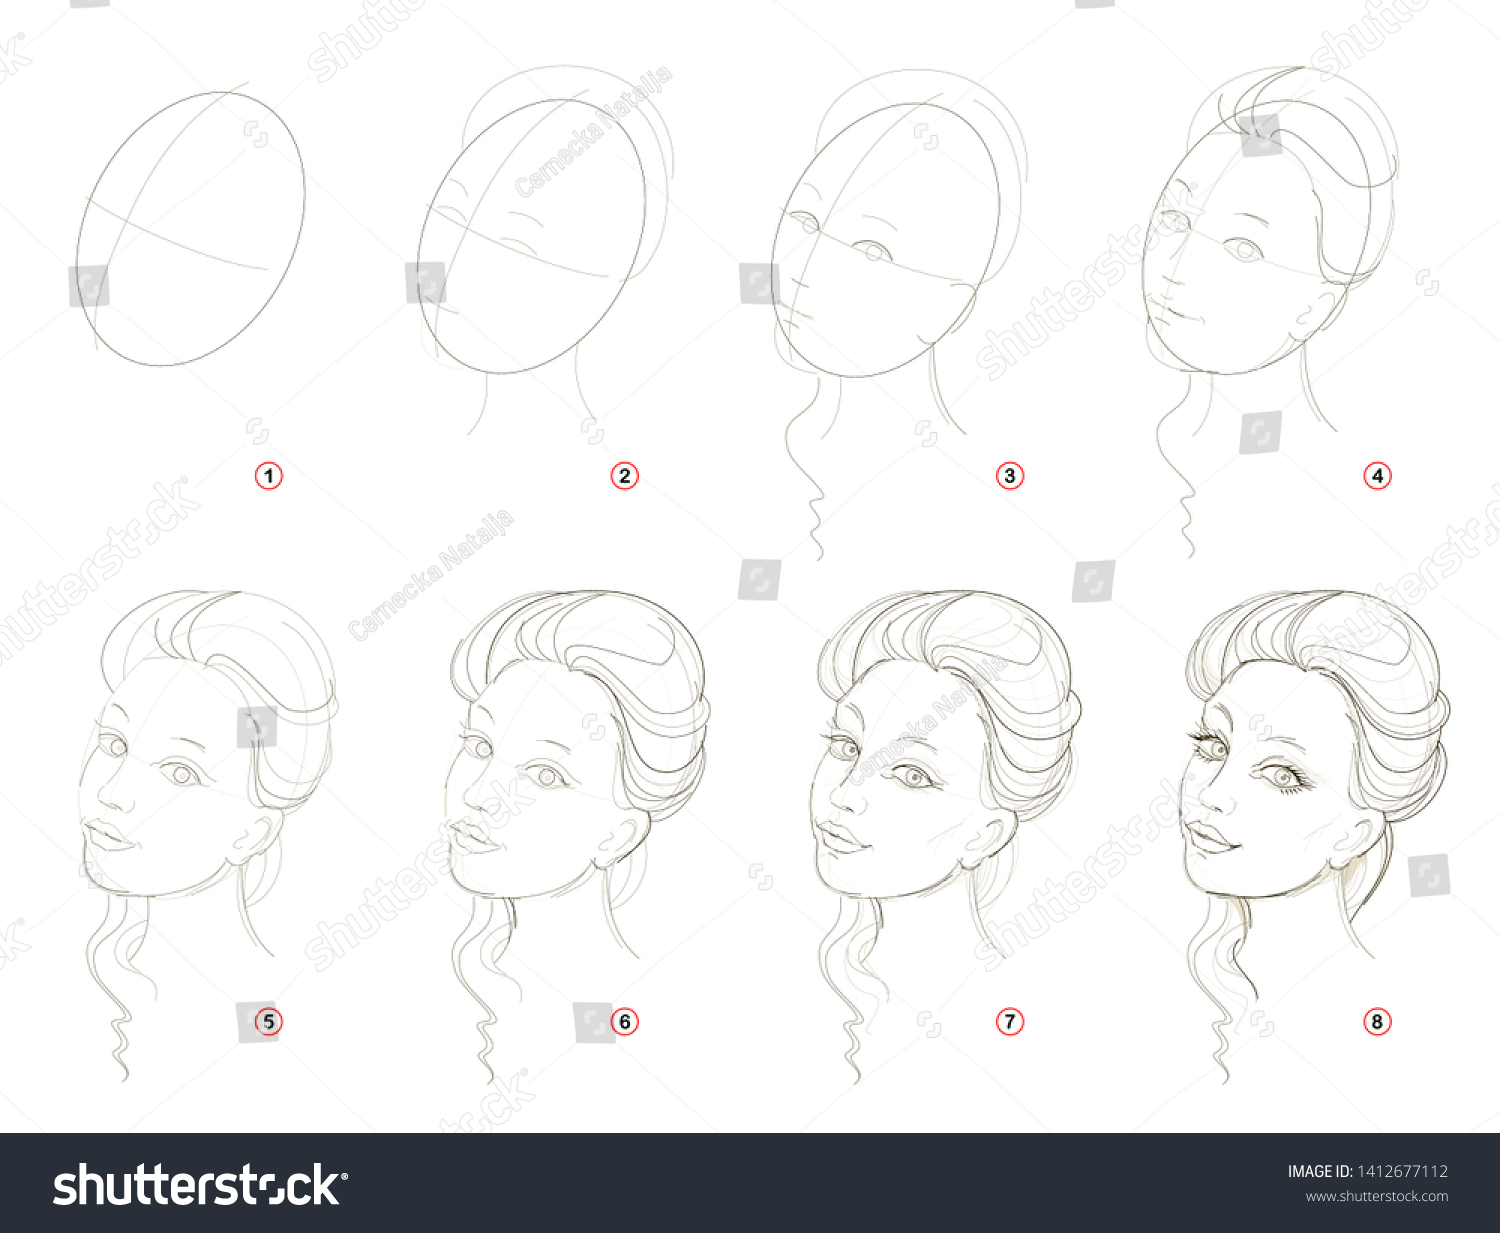 How To Draw Nose Step By Step With Pencil